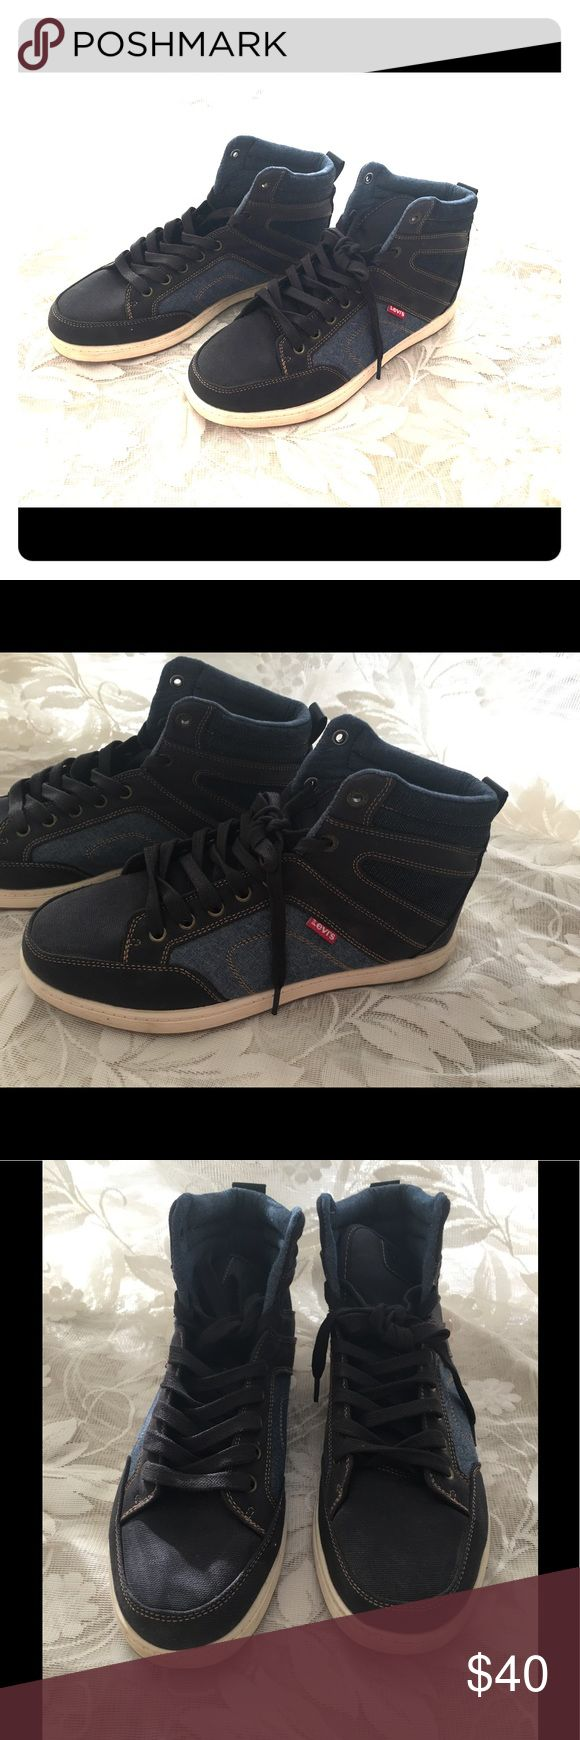 Size 9.5 Men's Levi's Jeffrey Casual Shoe Jeffrey casual shoe from Levi's , high top sneakers, the Jeffrey casual shoe sports a sturdy canvas upper with denim underlays. Like new been wore foe a couple times only, has a signs of normal wear condition. Levi's Shoes Sneakers